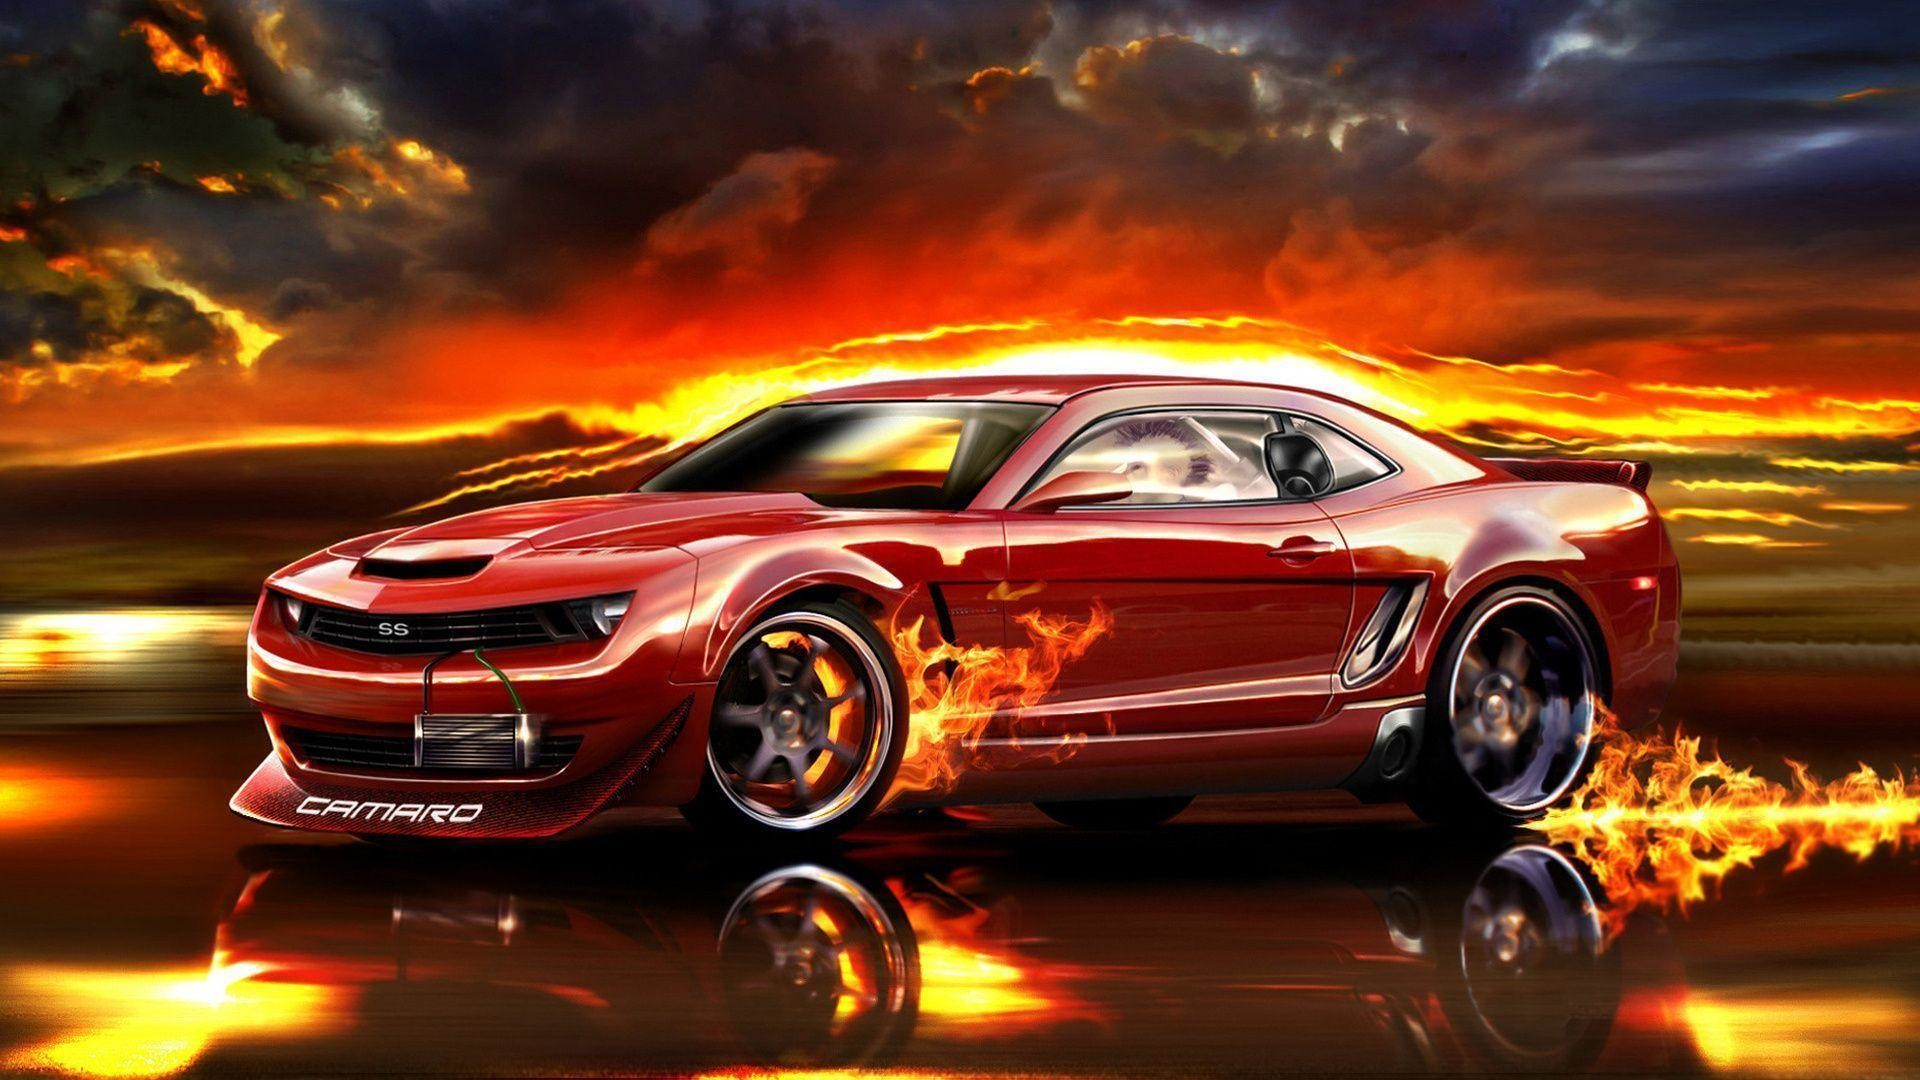 1920x1080 Chevrolet Camaro Wallpaper 40 Backgrounds | Wallruru.